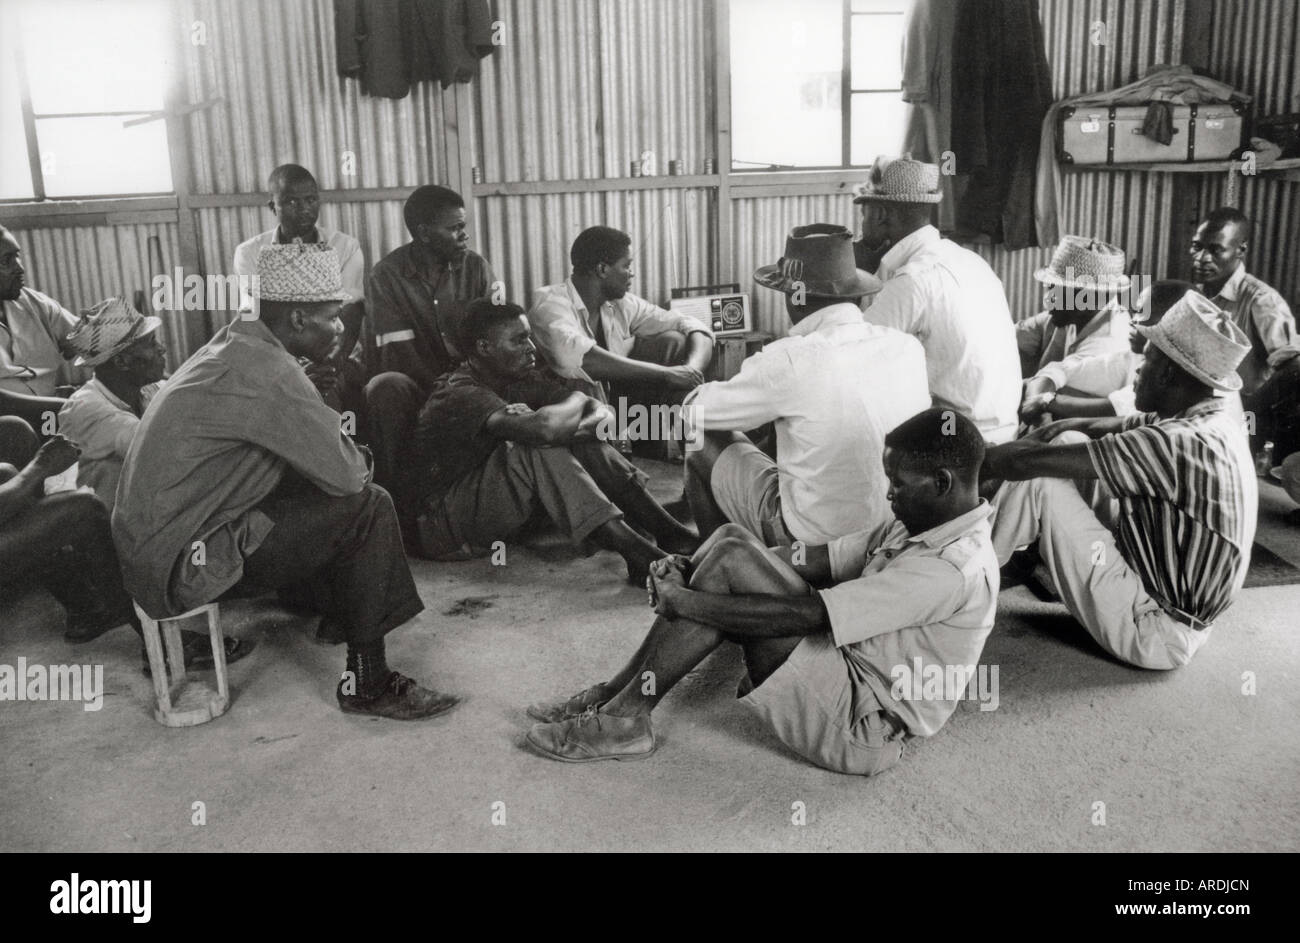 Detainees listen to a radio in Wha Wha, a detention camp in Ian Smith's illeglly declared Rhodesian republic - Stock Image